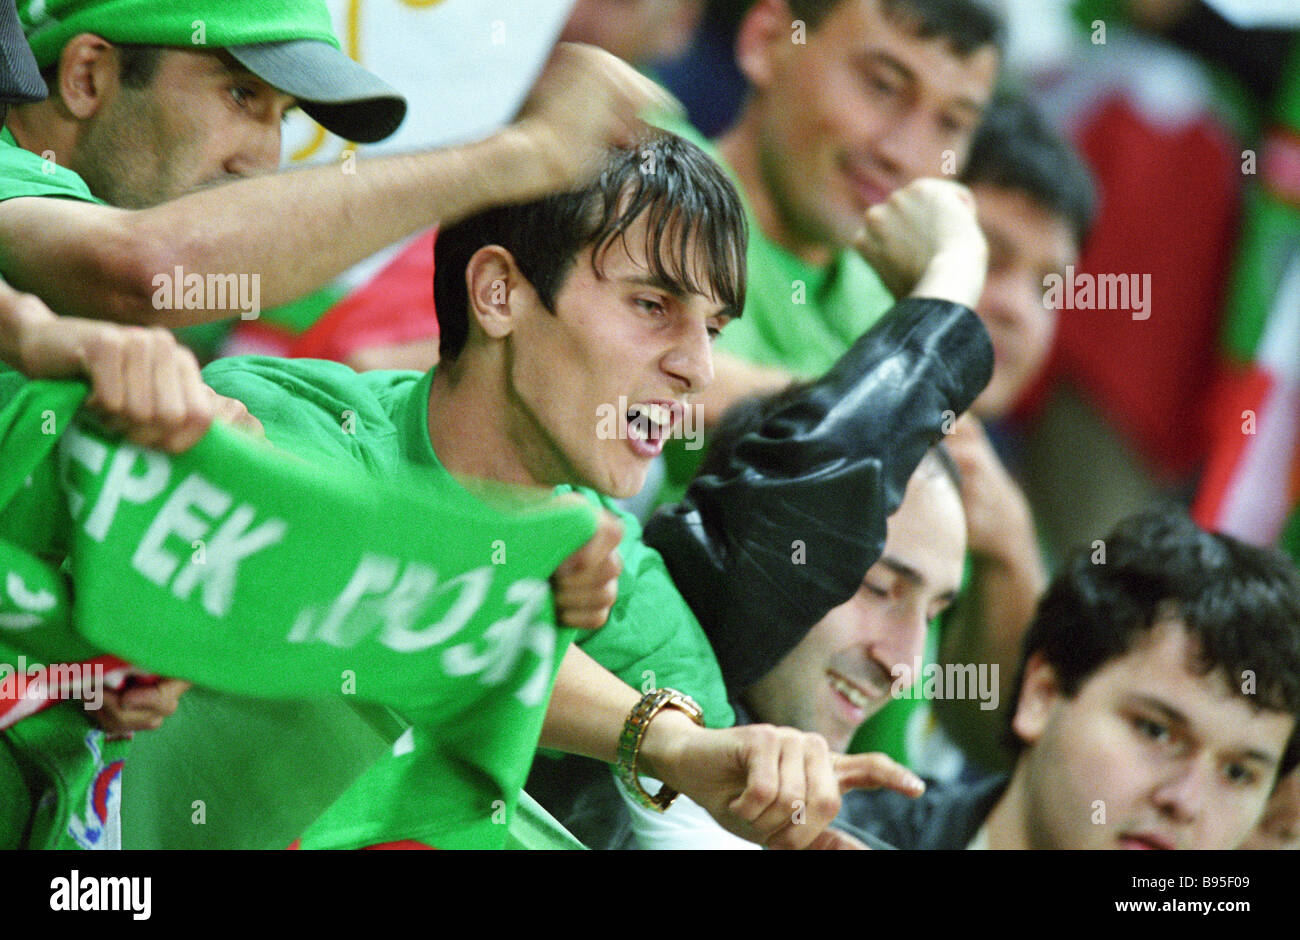 Fans of Terek Grozny at the Lokomotiv sports stadium A match between Terek and Poland s Lech on August 12 - Stock Image